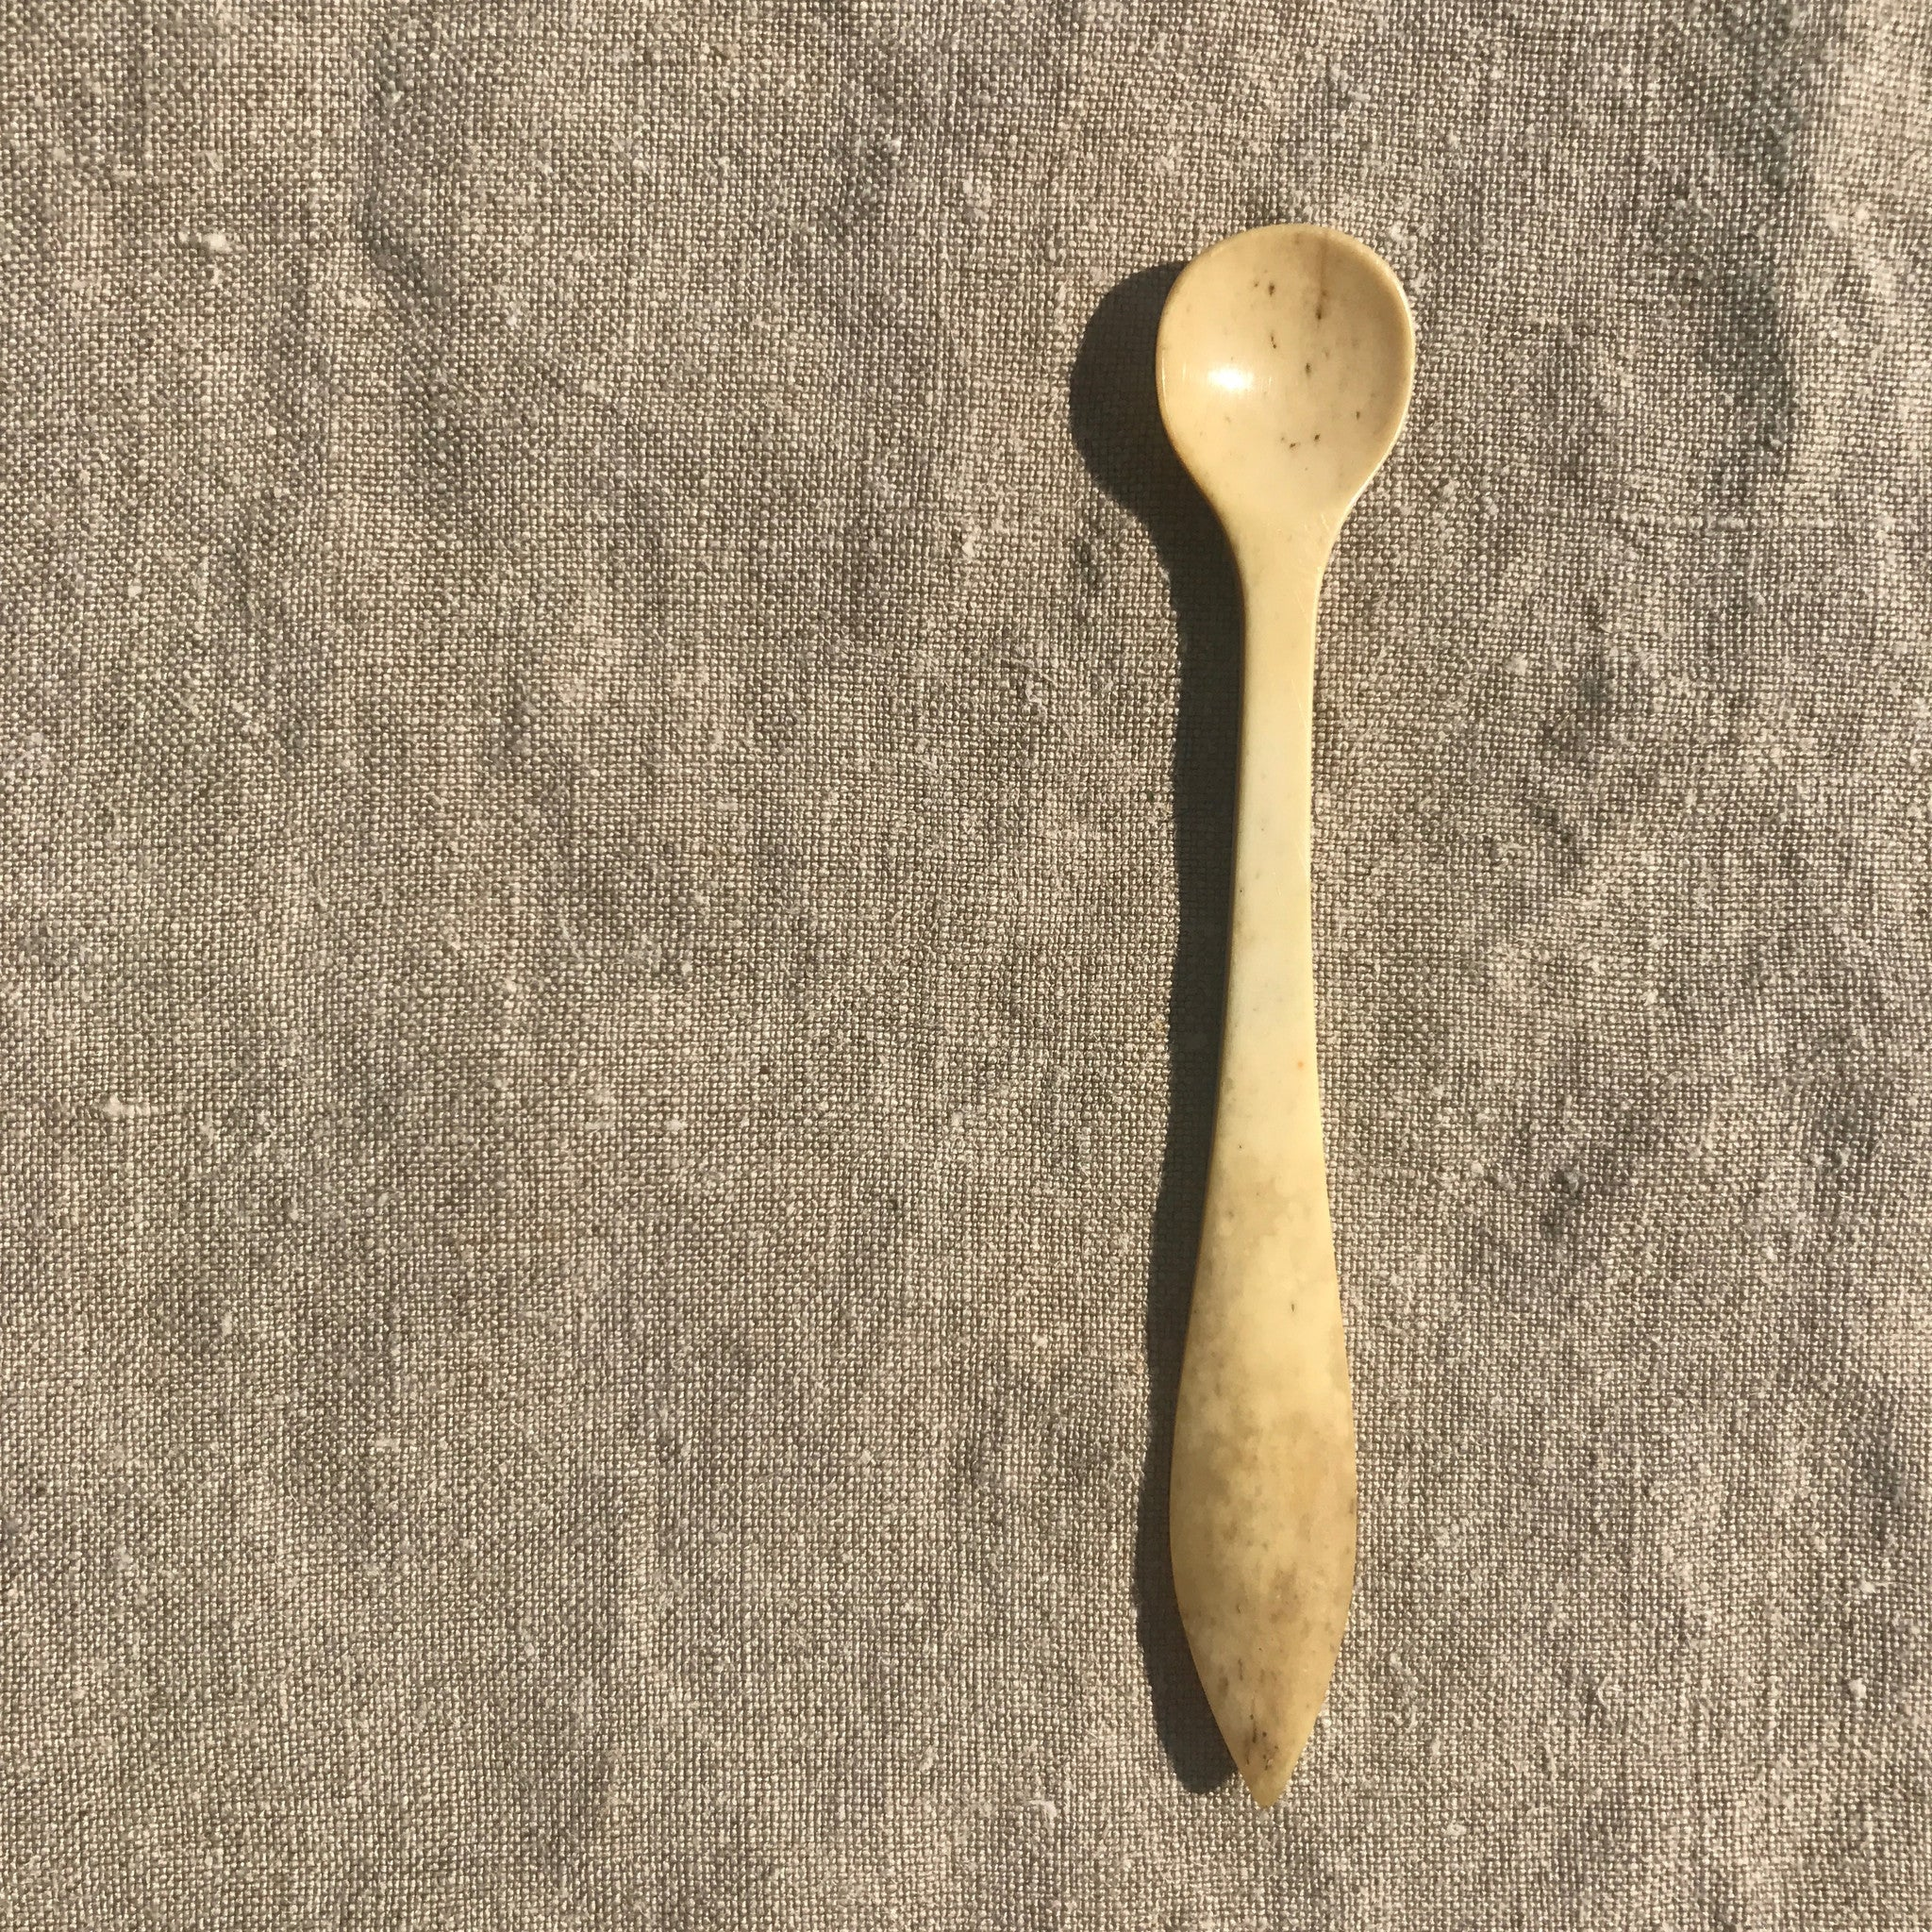 seaman's caviar spoon (2 of 7)